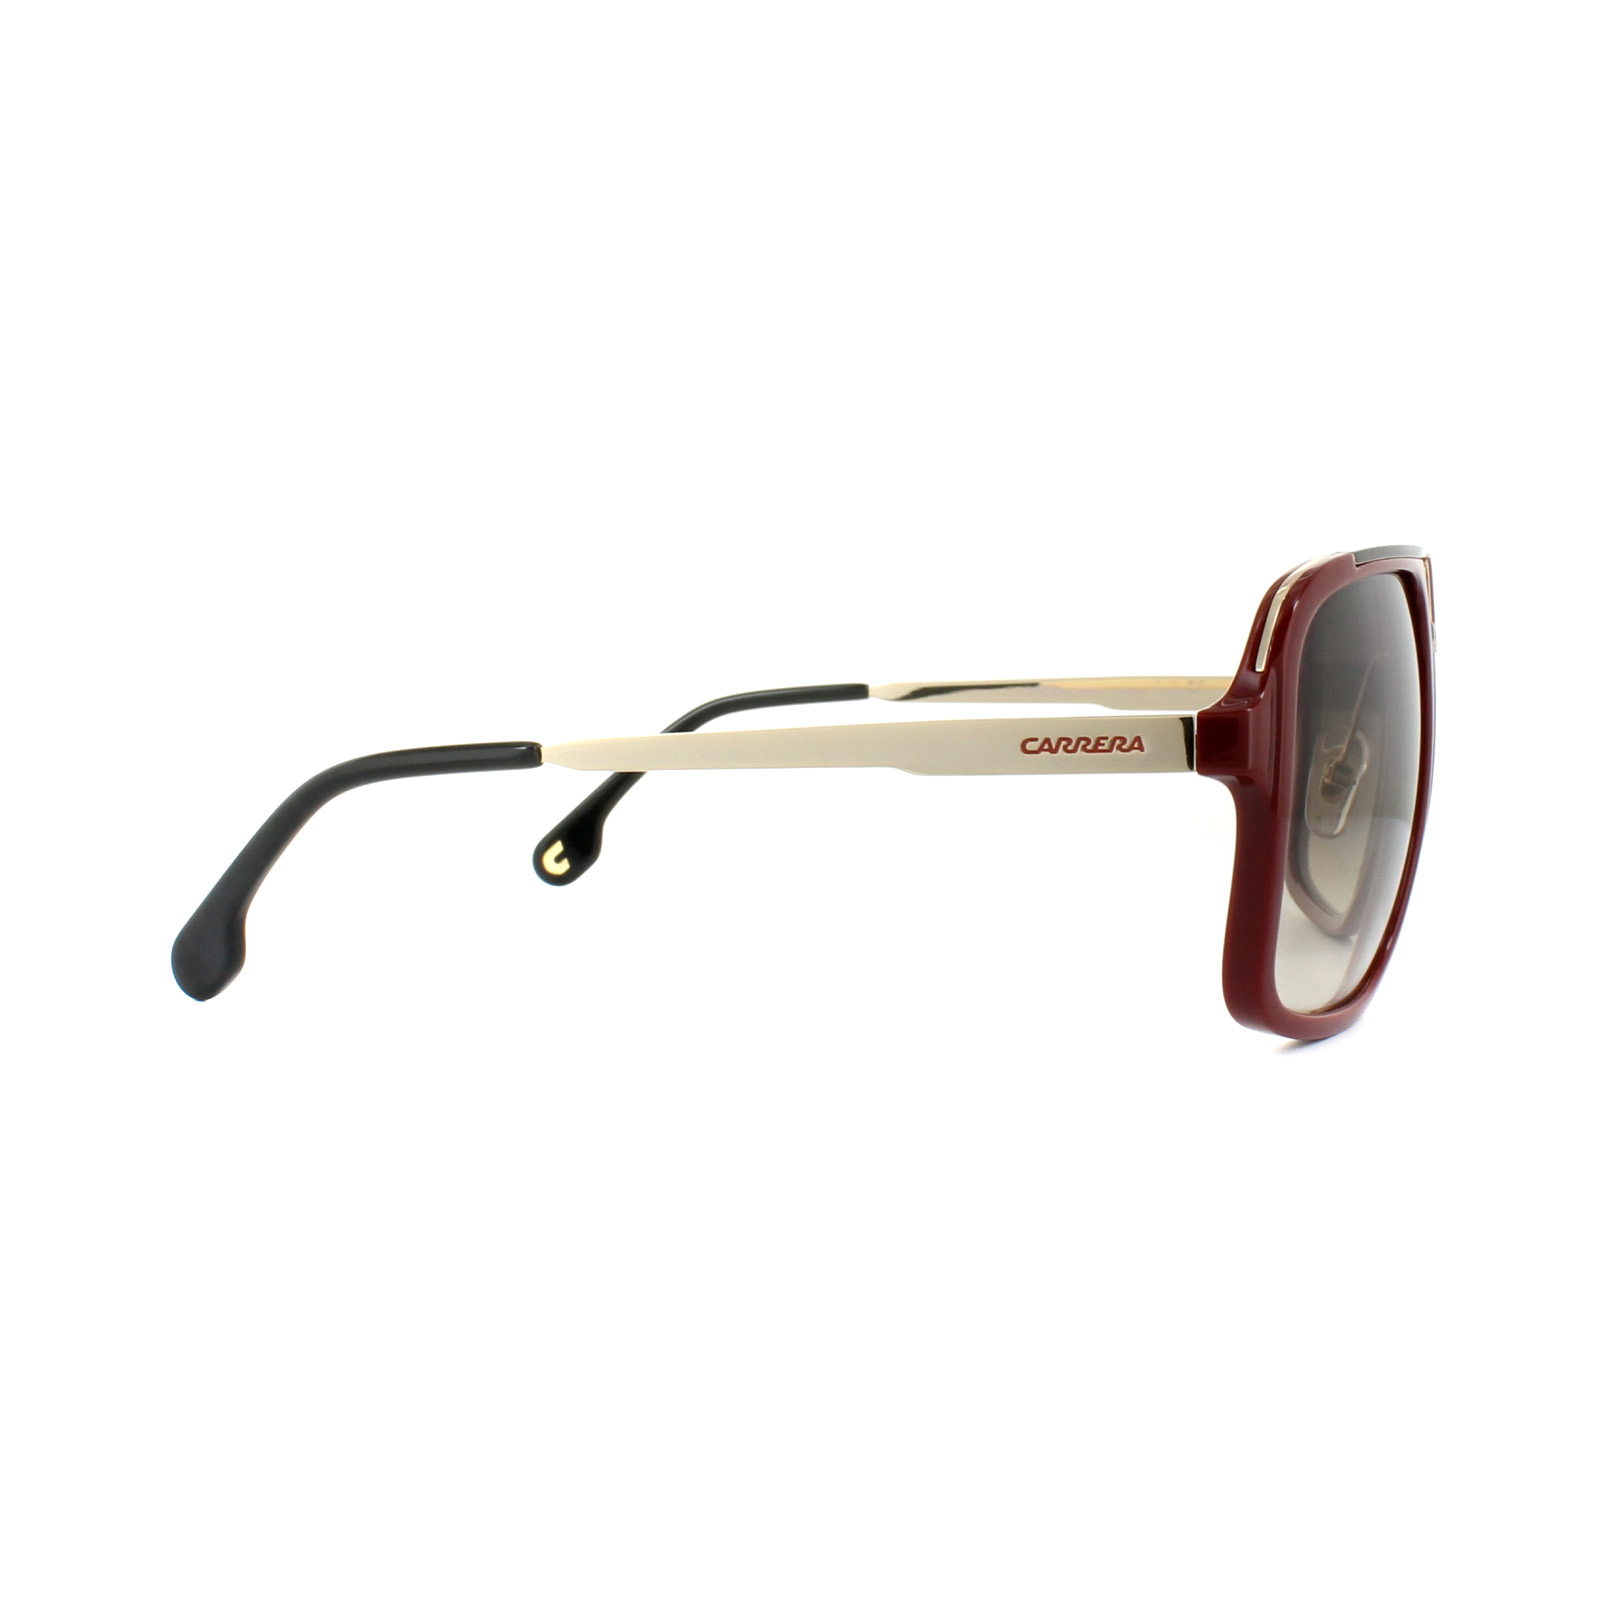 6b7a235ef6e9e2 Sentinel Carrera Sunglasses 1004 S AU2 HA Red Black Gold Brown Gradient